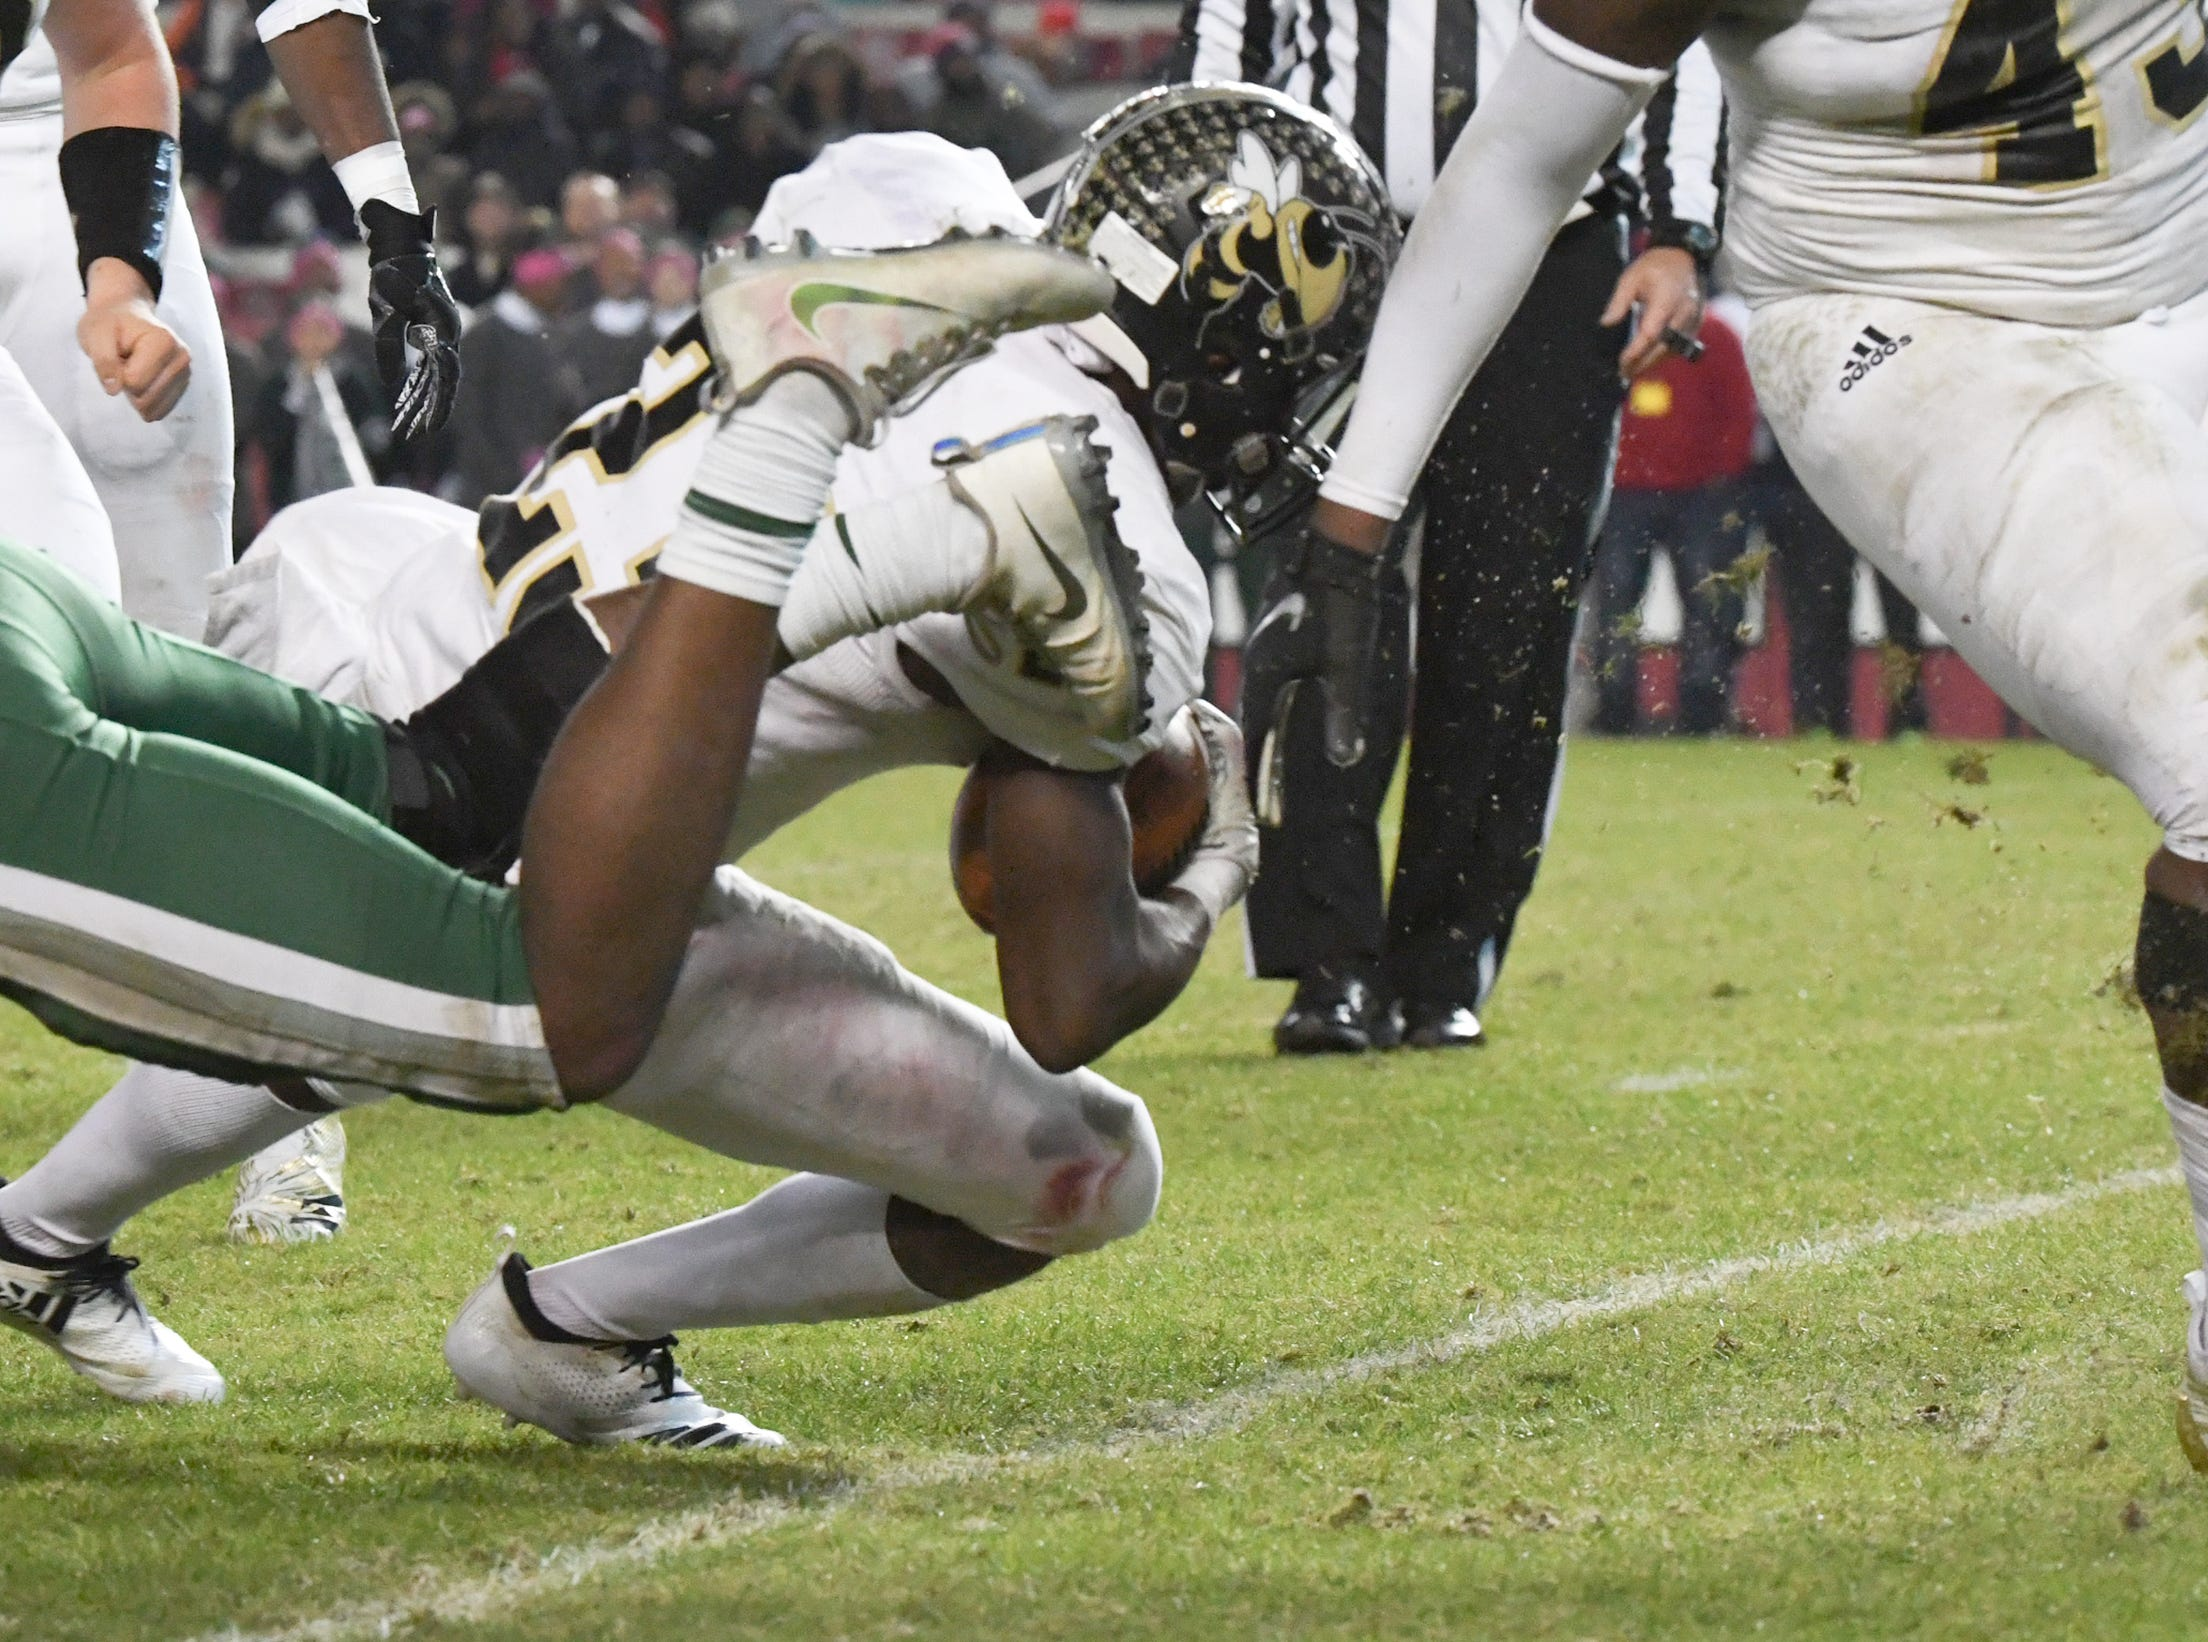 TL Hanna senior Isaiah Norris (23) scores an eight-yard touchdown against Dutch Fork during the second quarter of the Class AAAAA state championship game at Williams-Brice Stadium in Columbia Saturday, December 8, 2018.